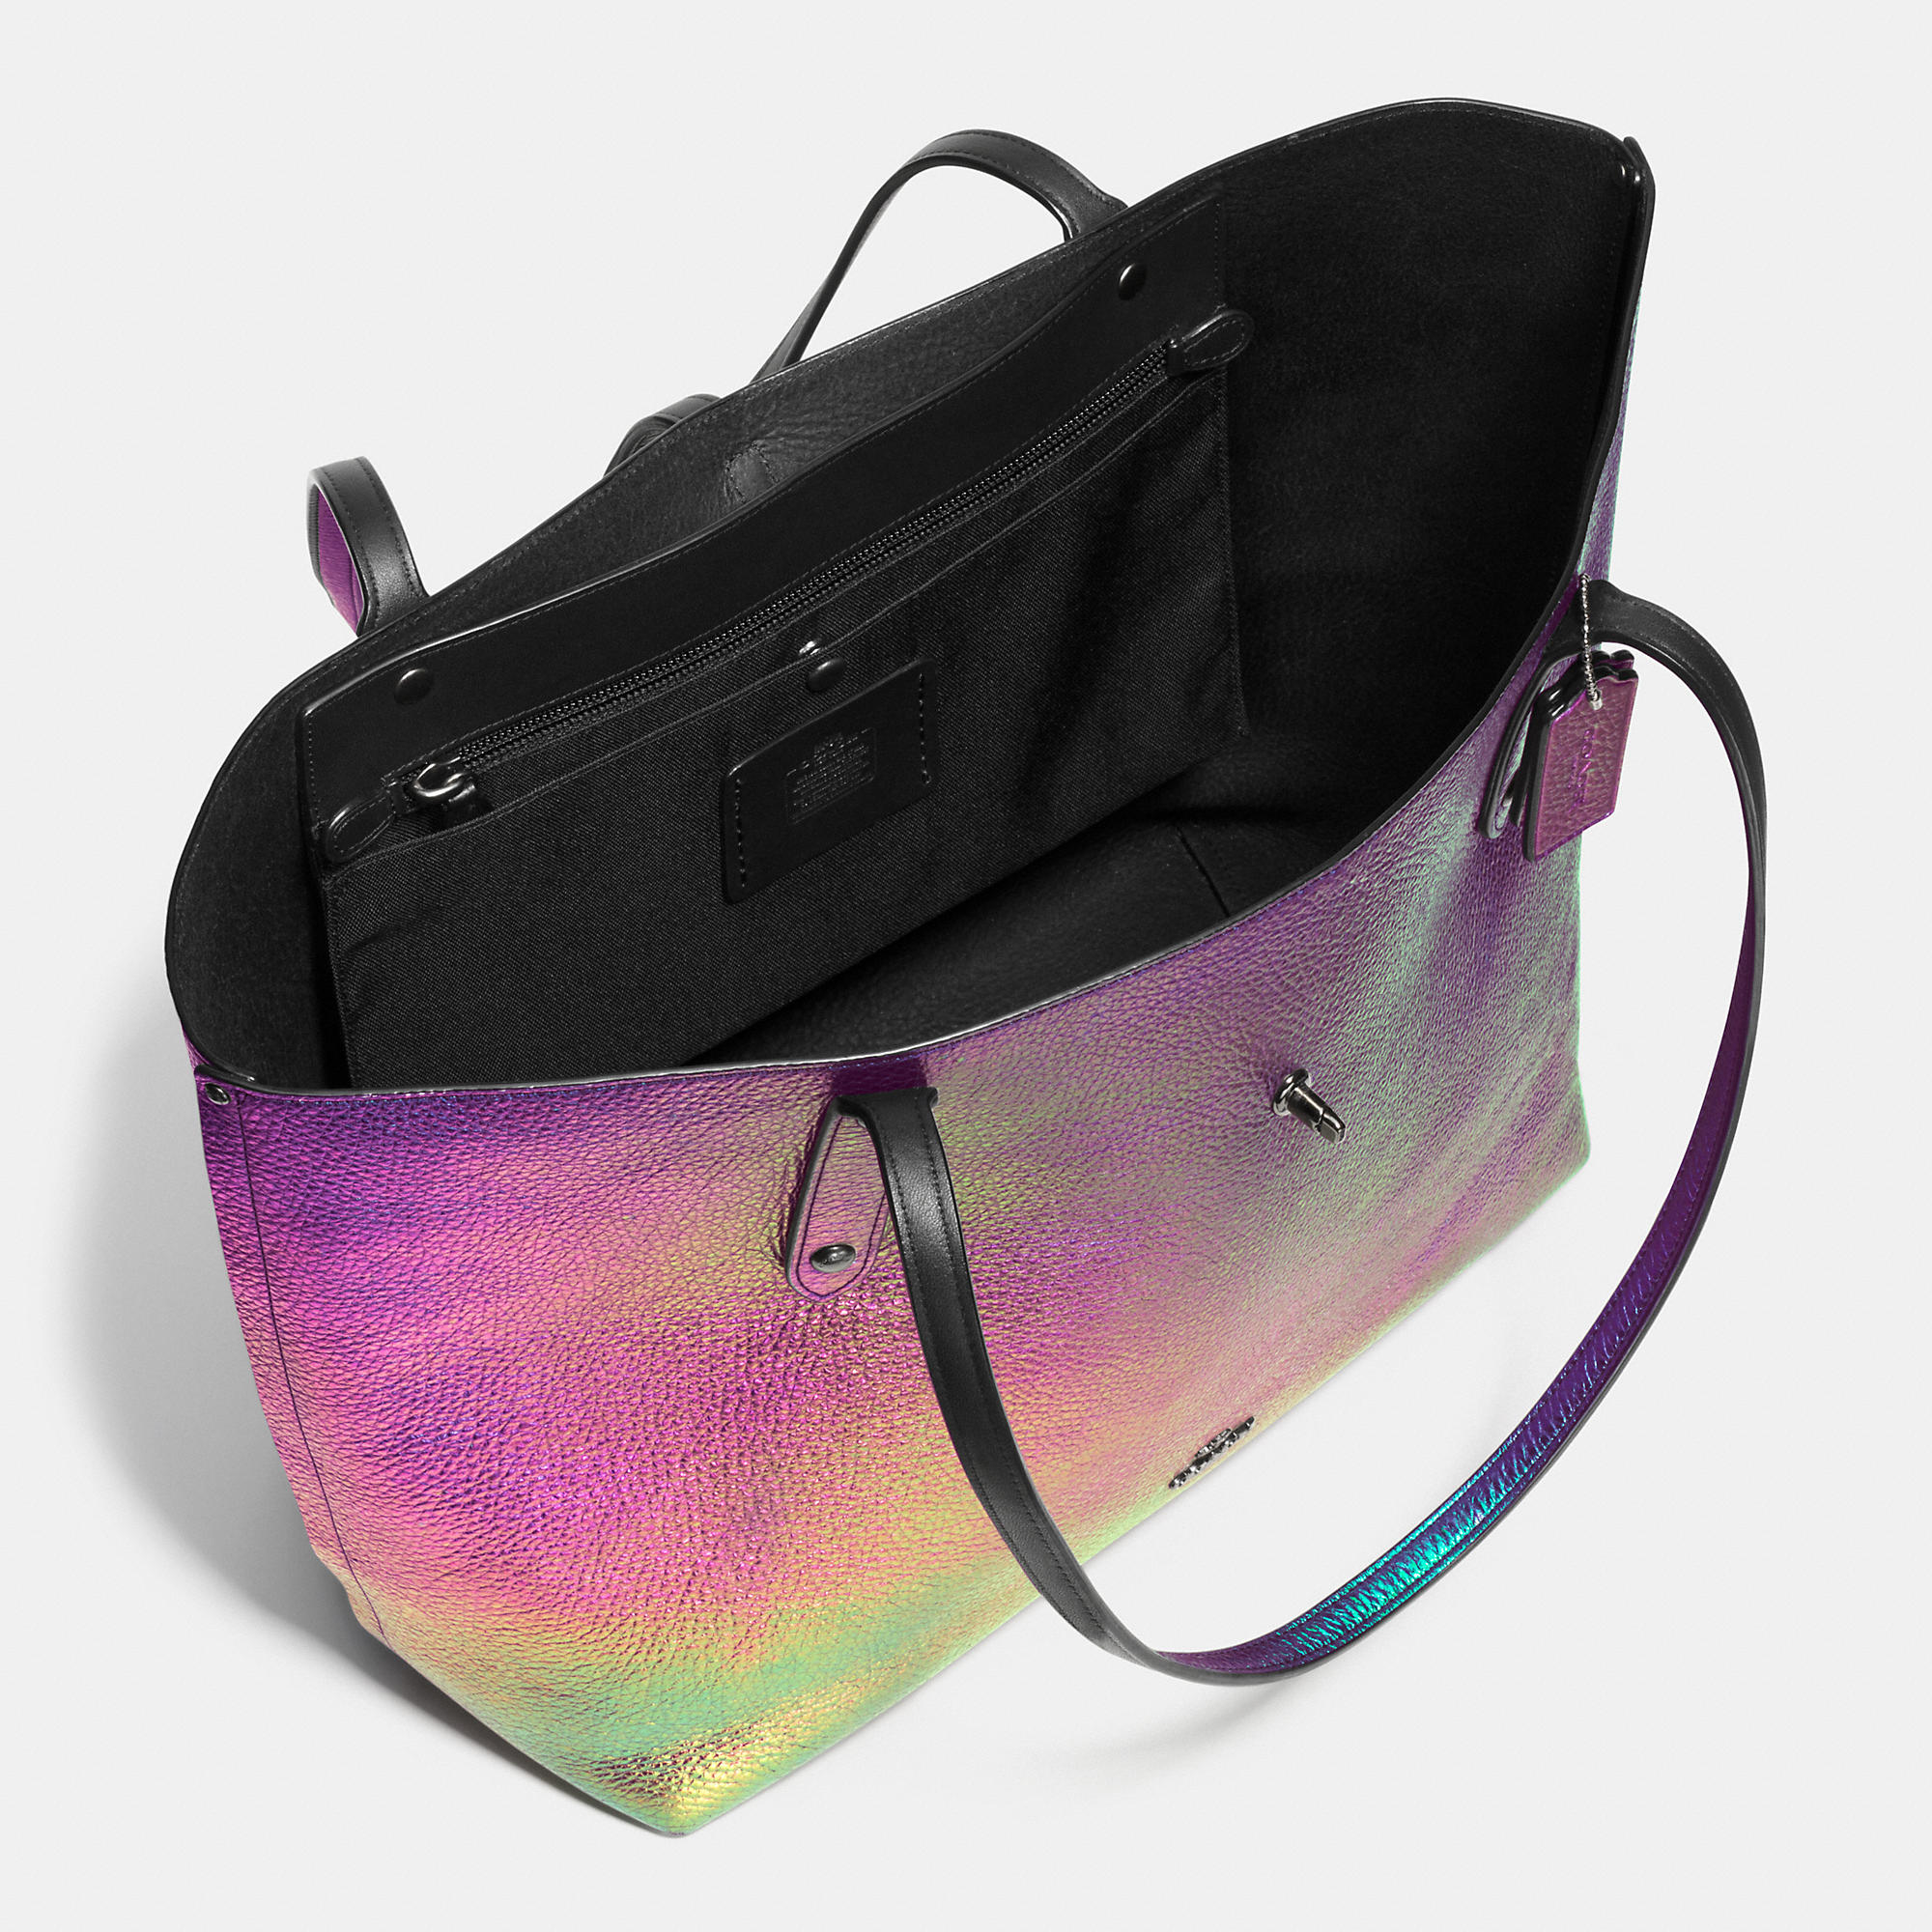 74931fd4d ... promo code for lyst coach market hologram leather tote 28821 3354e